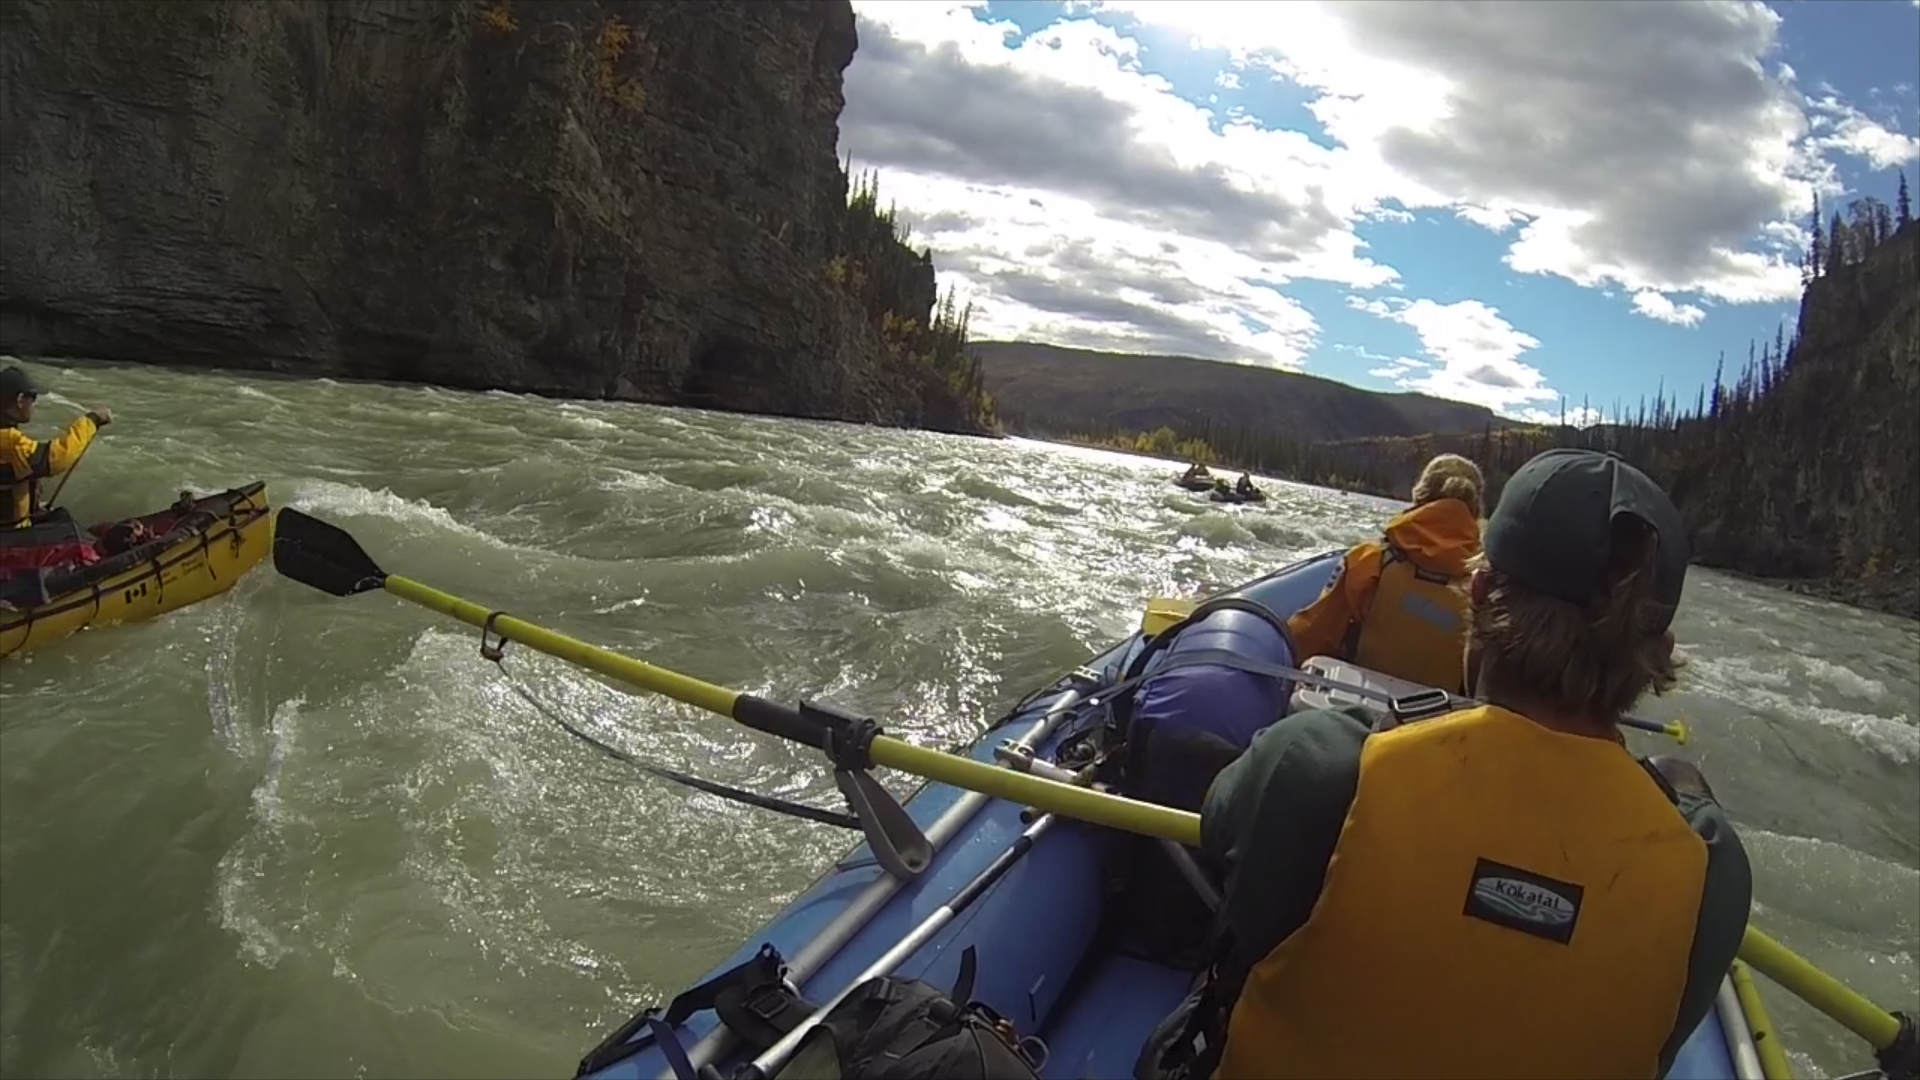 River rafting in Nahanni offers both challenges and escapes. Which would you prefer?